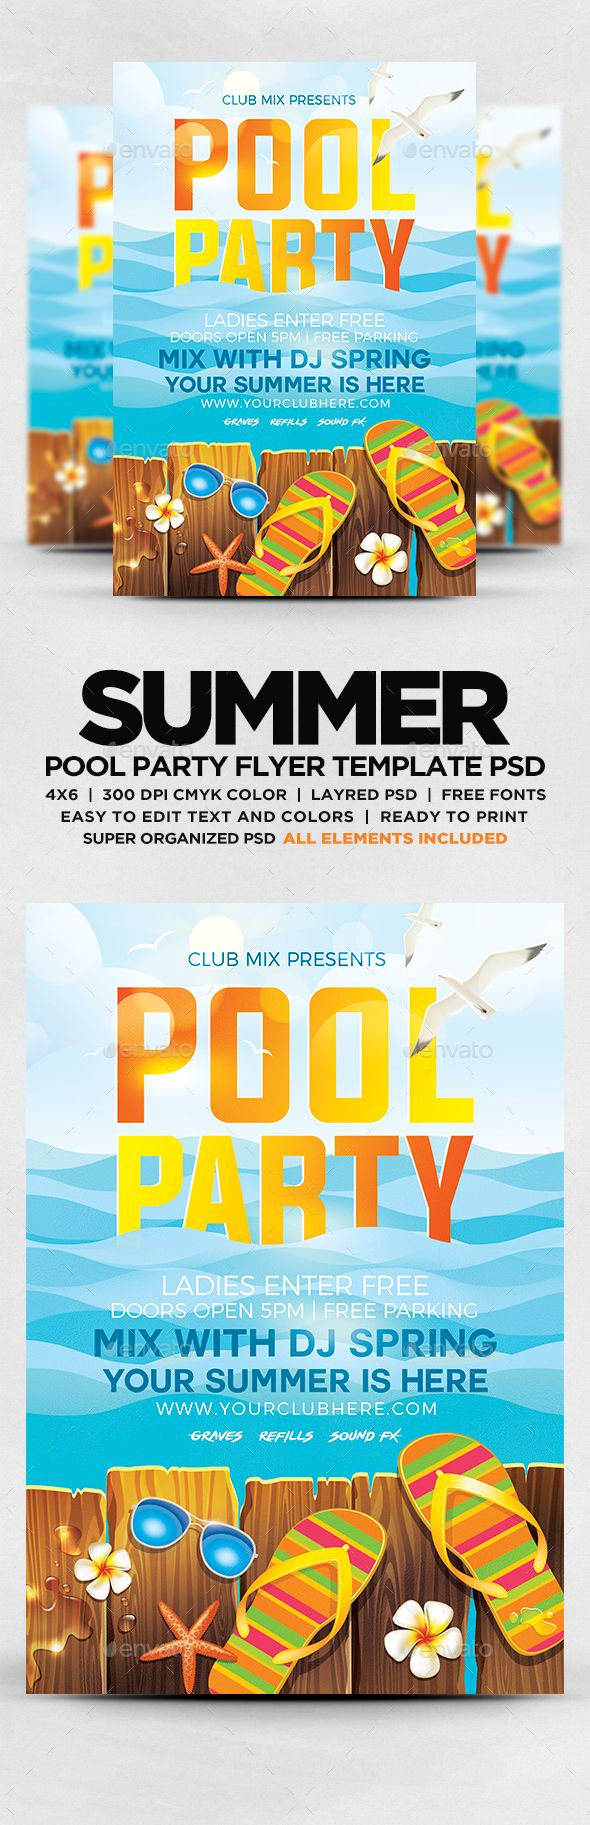 Summer Pool Party #Flyer   Flyers Print Templates Download Here: Https://